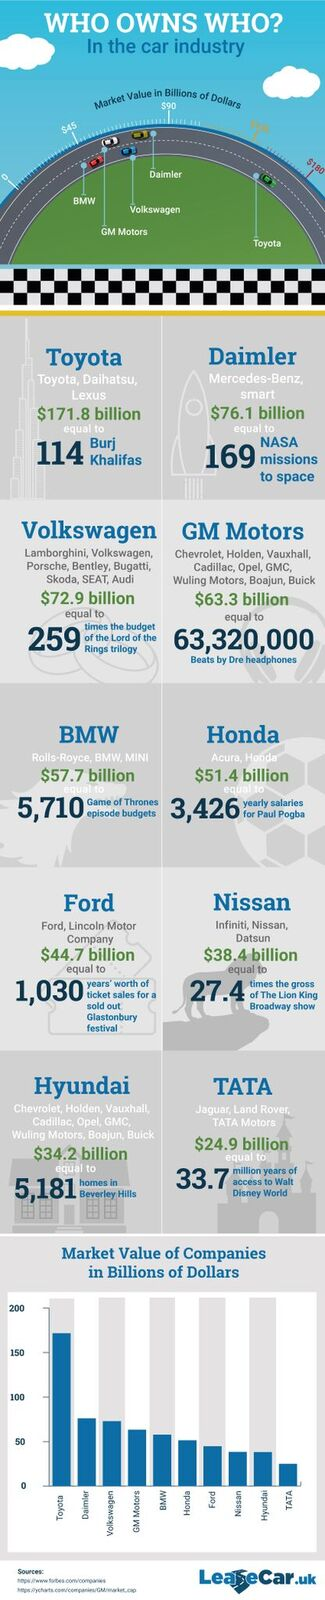 Lease Car infographic